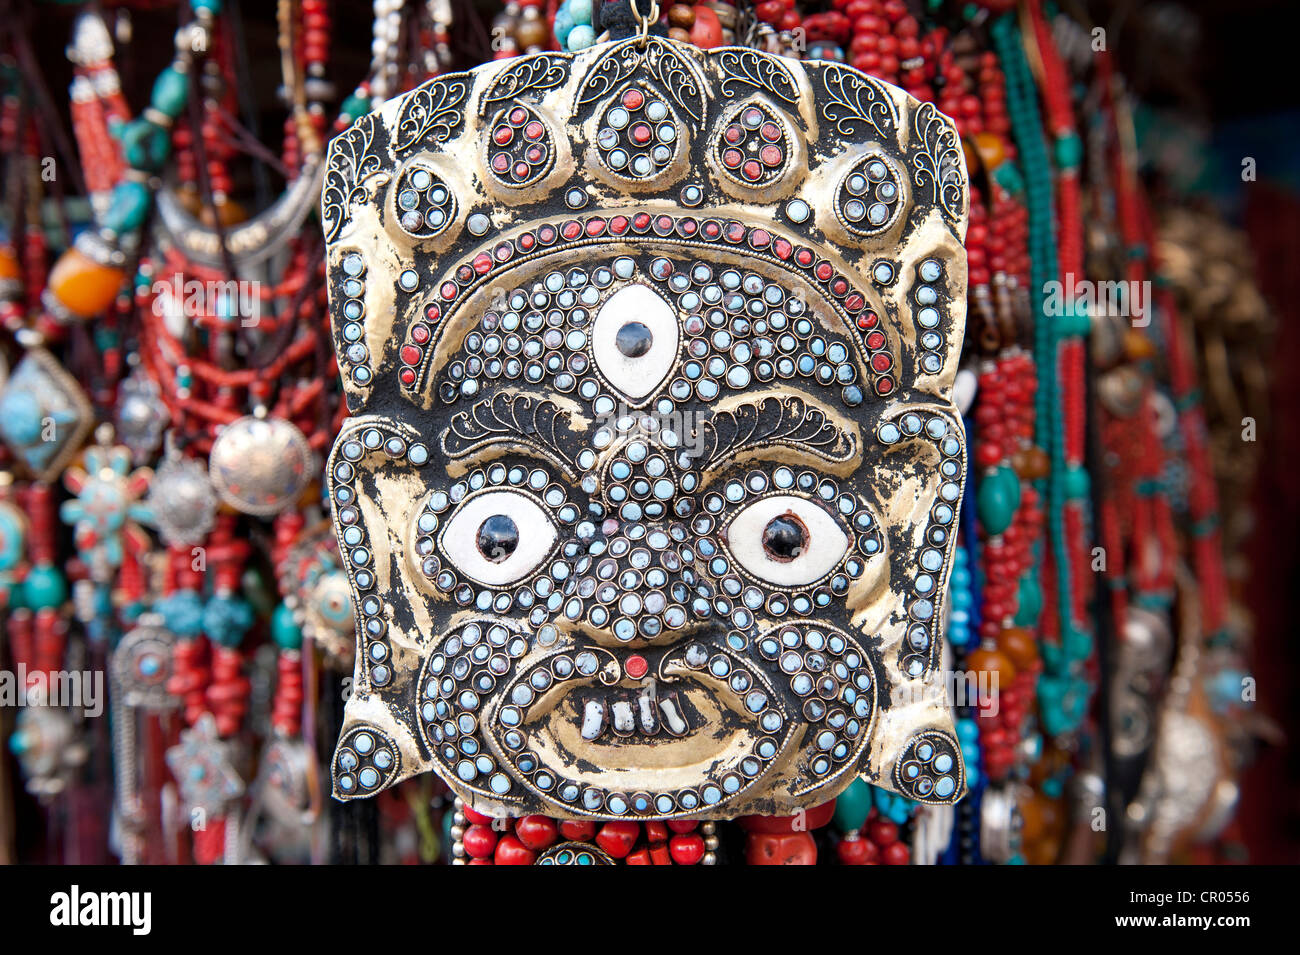 Masque tibétain, bijoux, colliers, boutique souvenirs, Lhassa, de l'Himalaya, le Tibet central, Ue-Tsang, Photo Stock